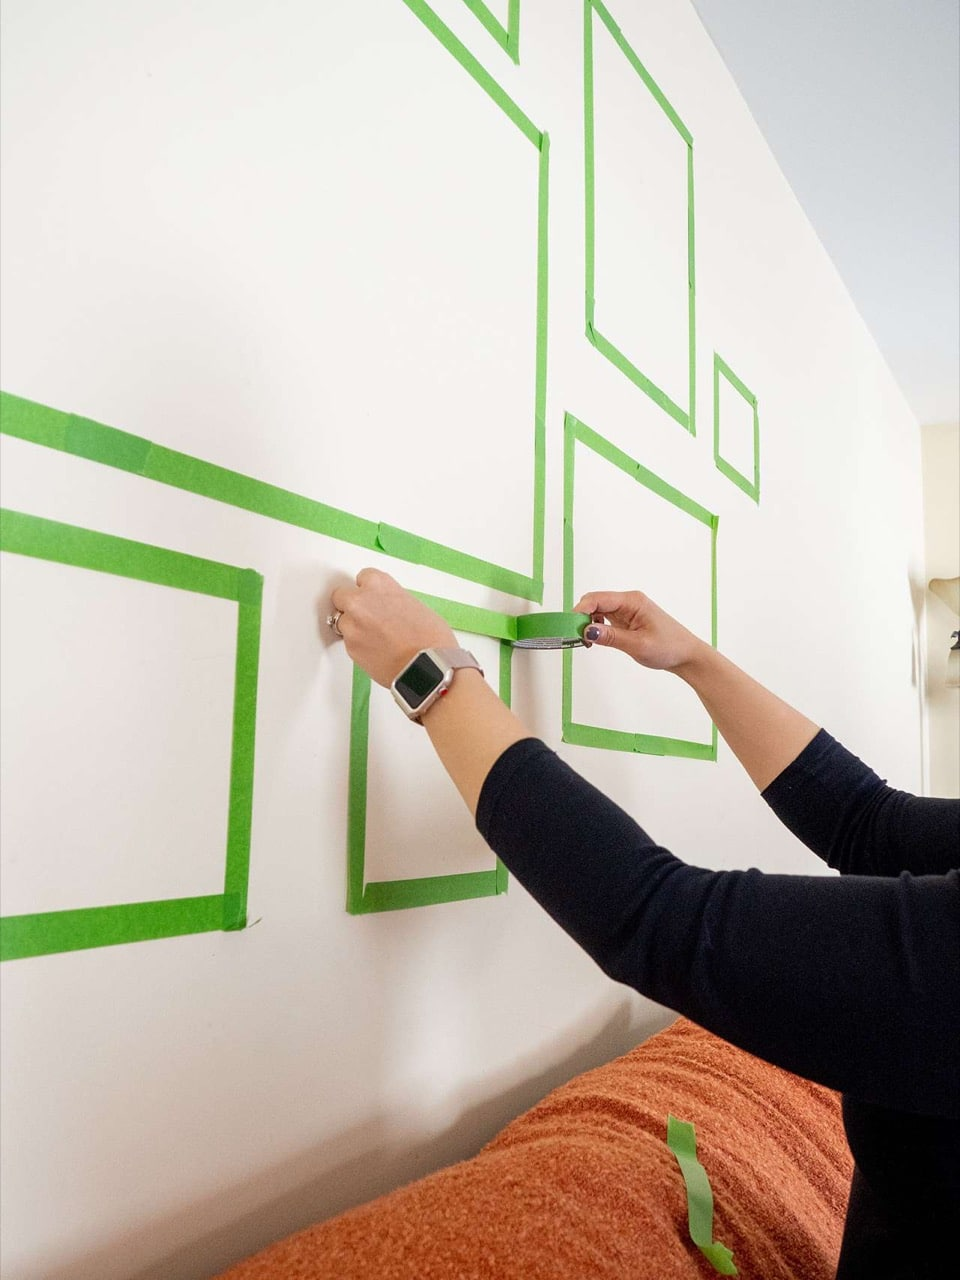 Painter's tape to plan gallery wall